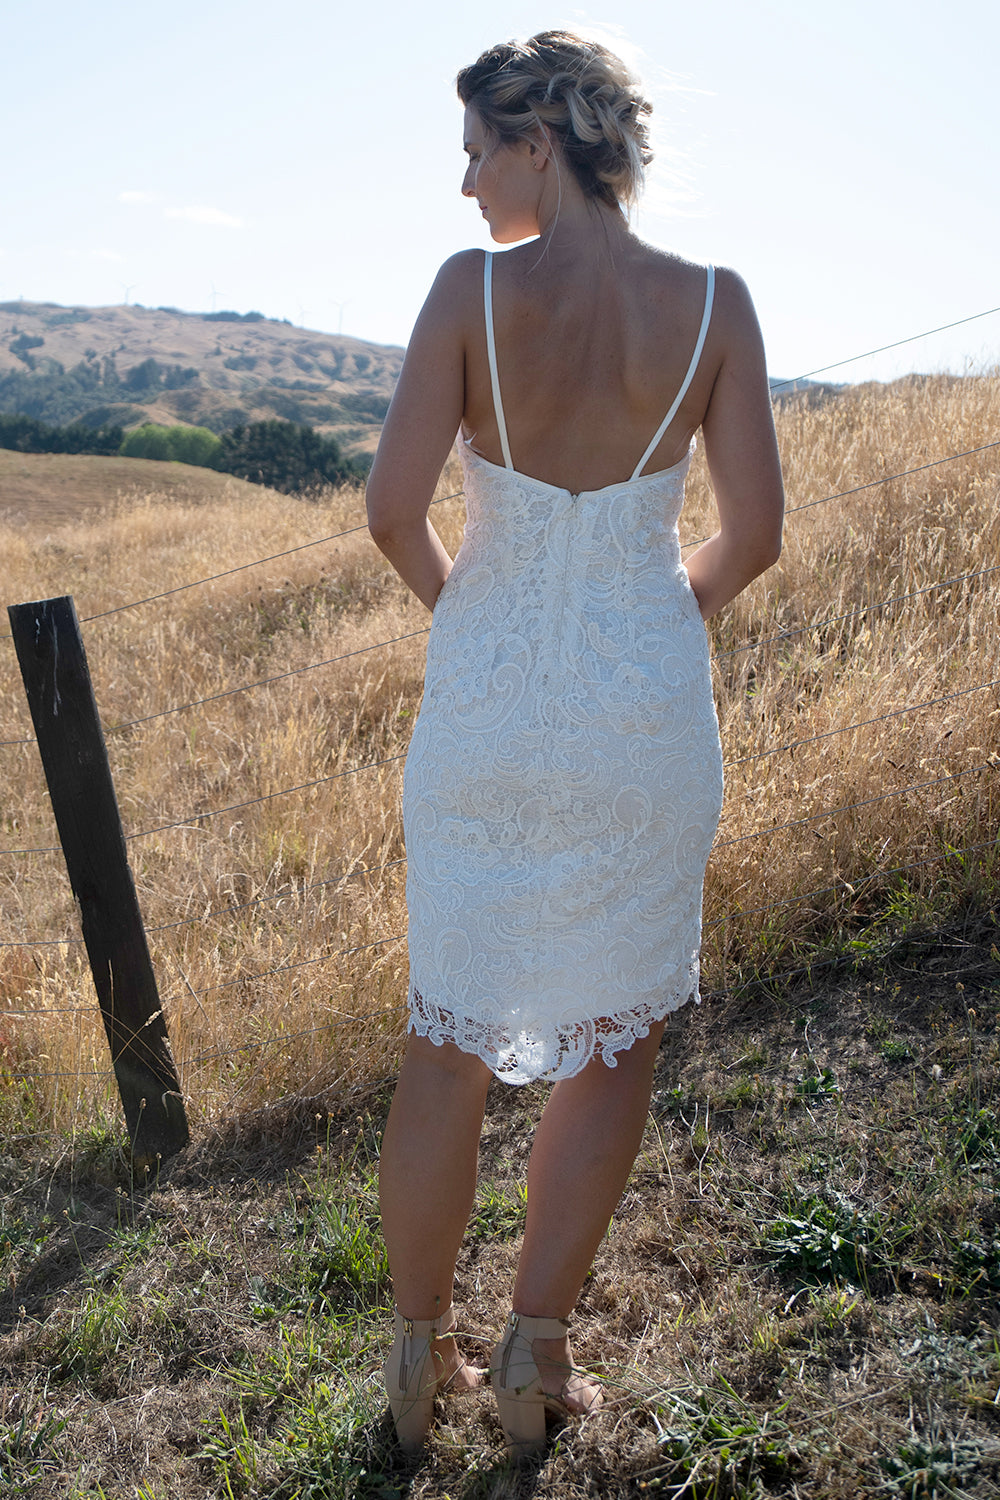 Dani Vegas Wedding Dress | Annah Stretton Affordable Designer Bridal | Lace Wedding Dress | Modern Lace Bridal Gown | Mermaid Style Wedding Dress